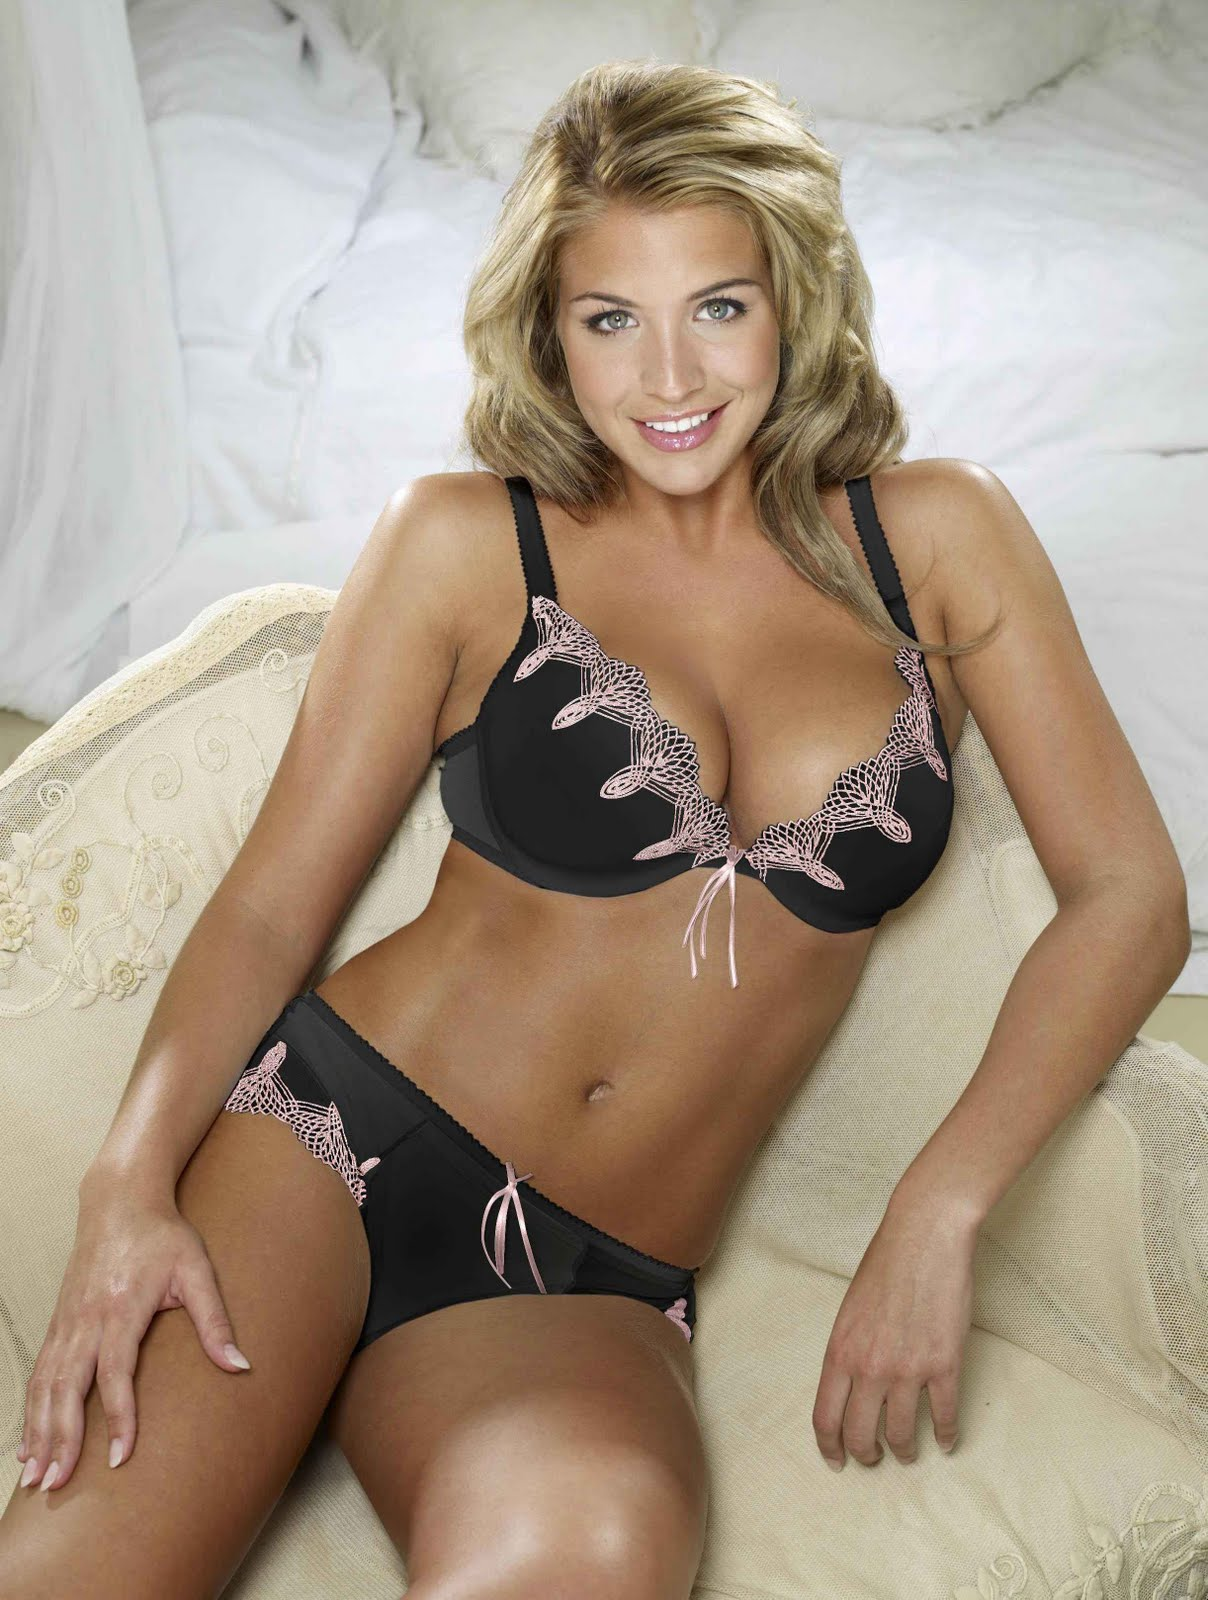 Gemma Atkinson In Lingerie Celebrities Profile Gallery